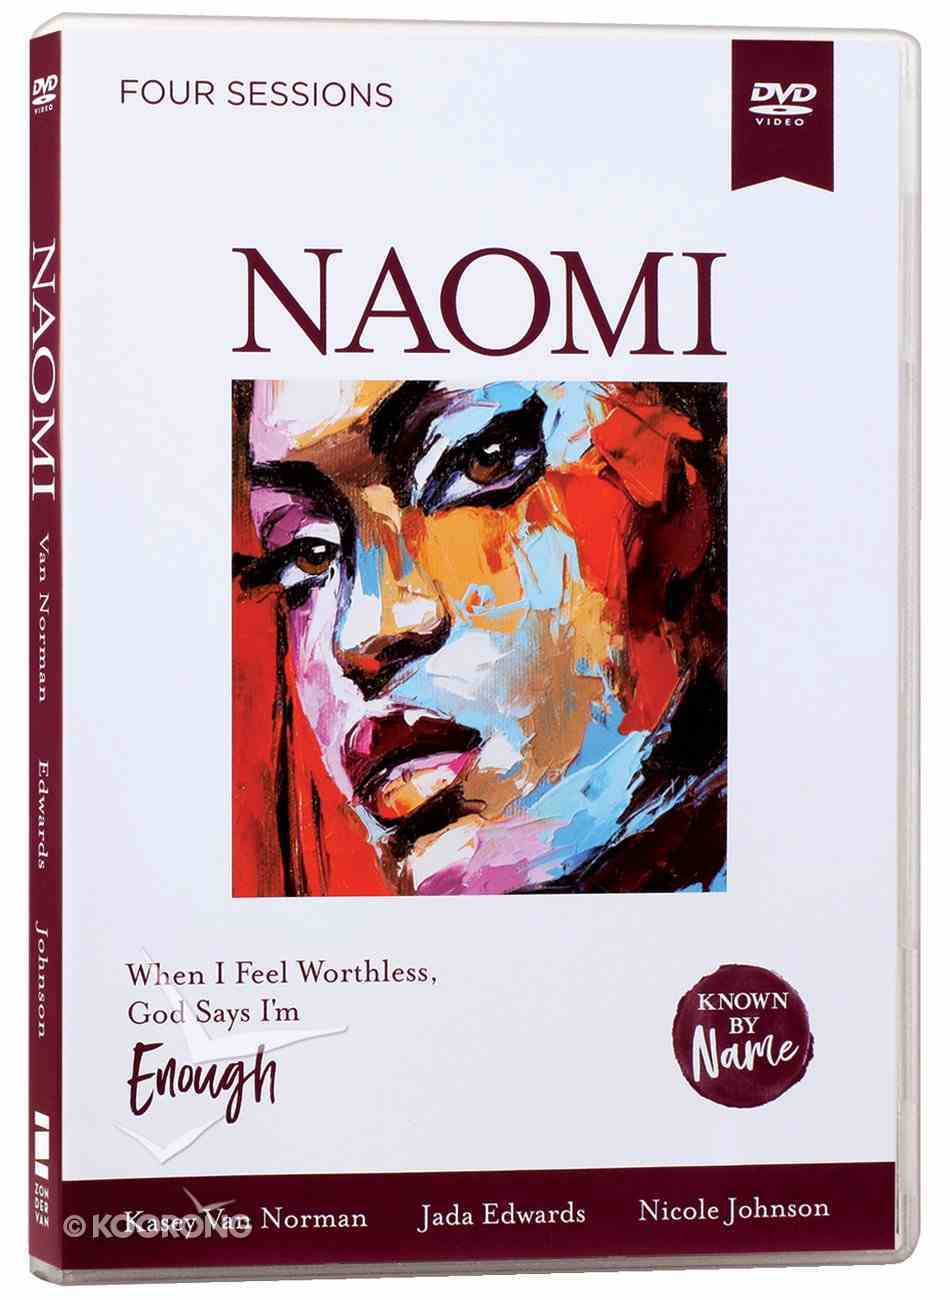 Naomi : When I Feel Worthless, God Says I'm Enough (DVD Study) (Known By Name Series) DVD